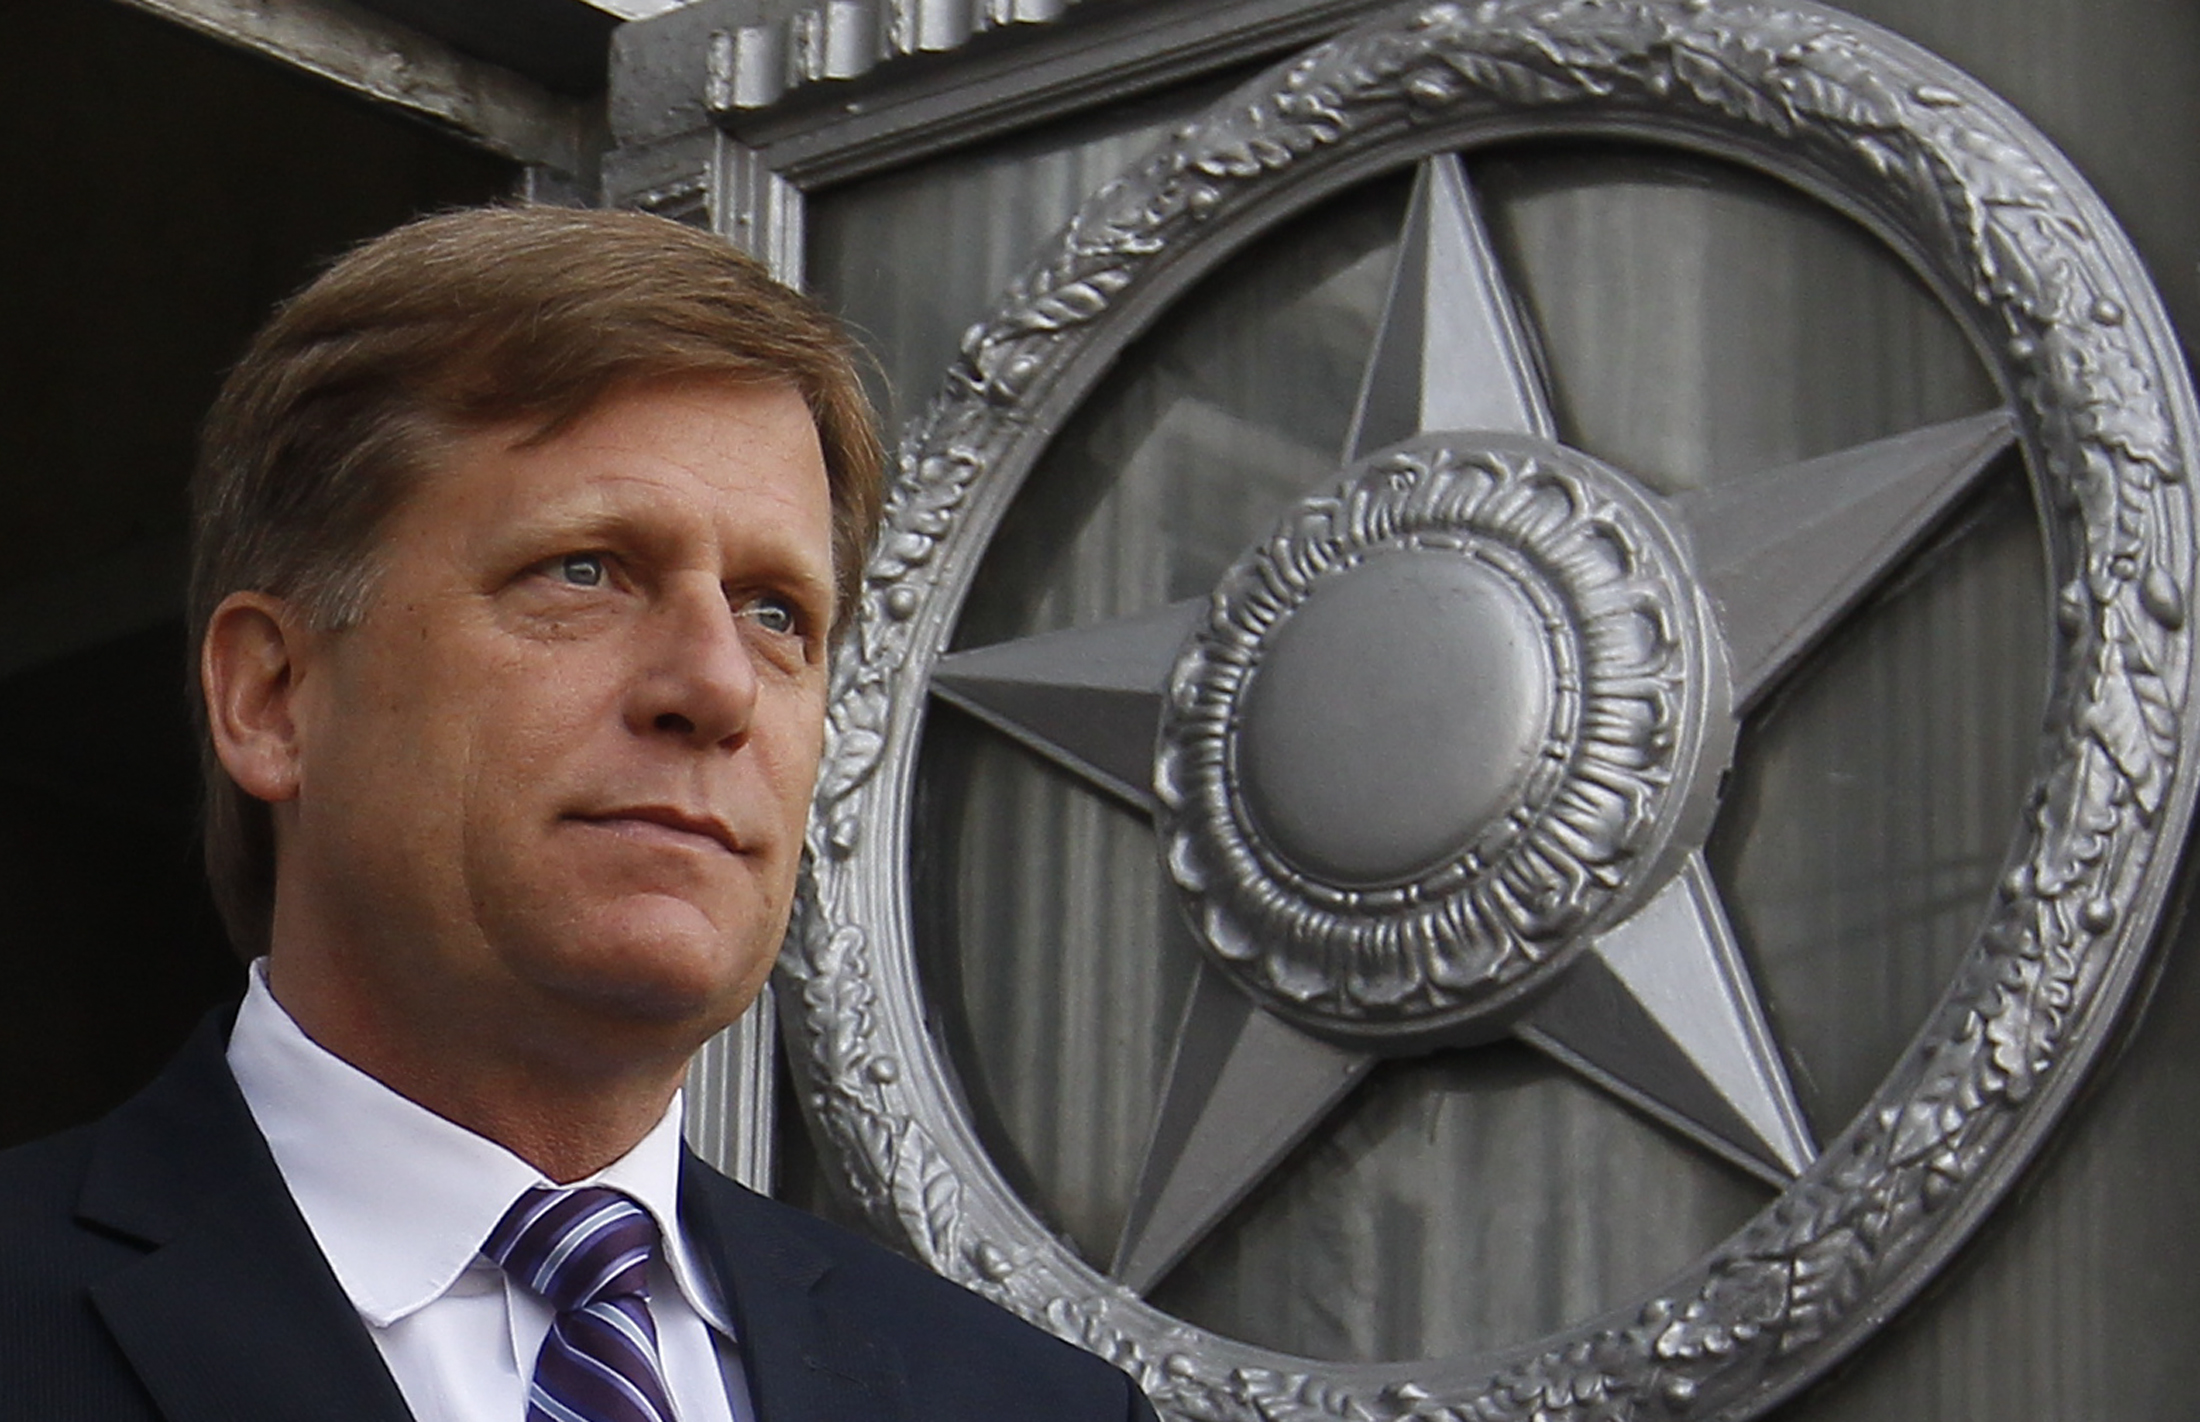 U.S. Ambassador to Russia Michael McFaul is slated to leave his post later this month.